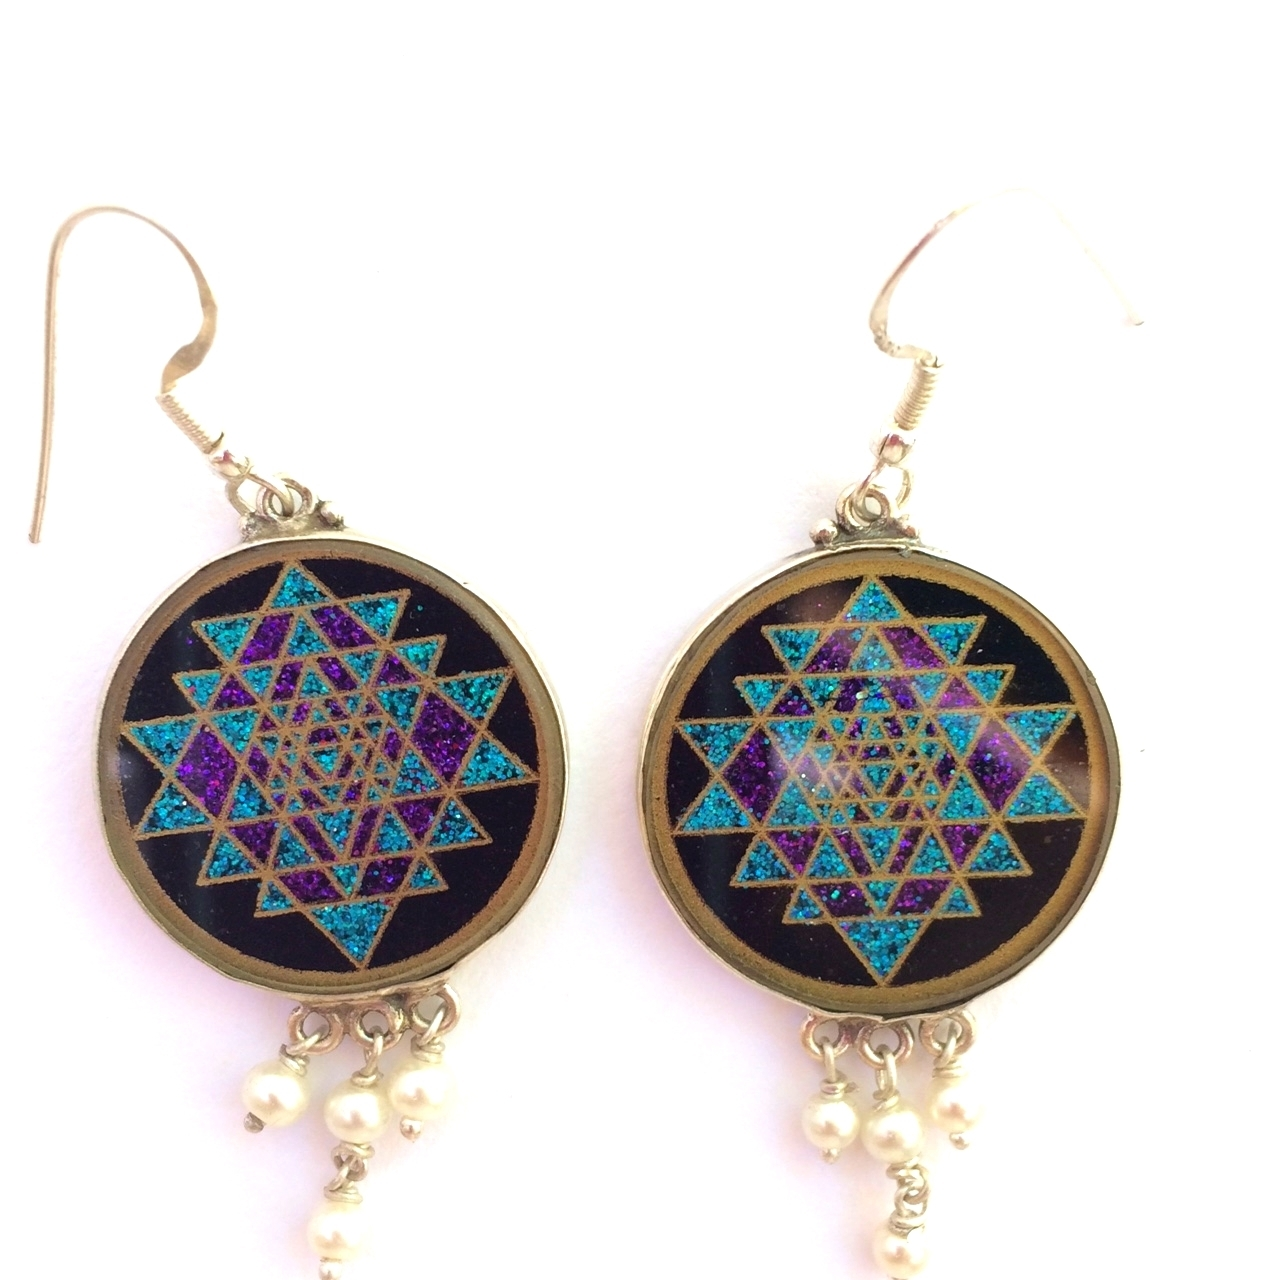 Sri Yantra Sacred Geometry Earrings (black tourmaline) by Scalar Heart Collection 708315056742